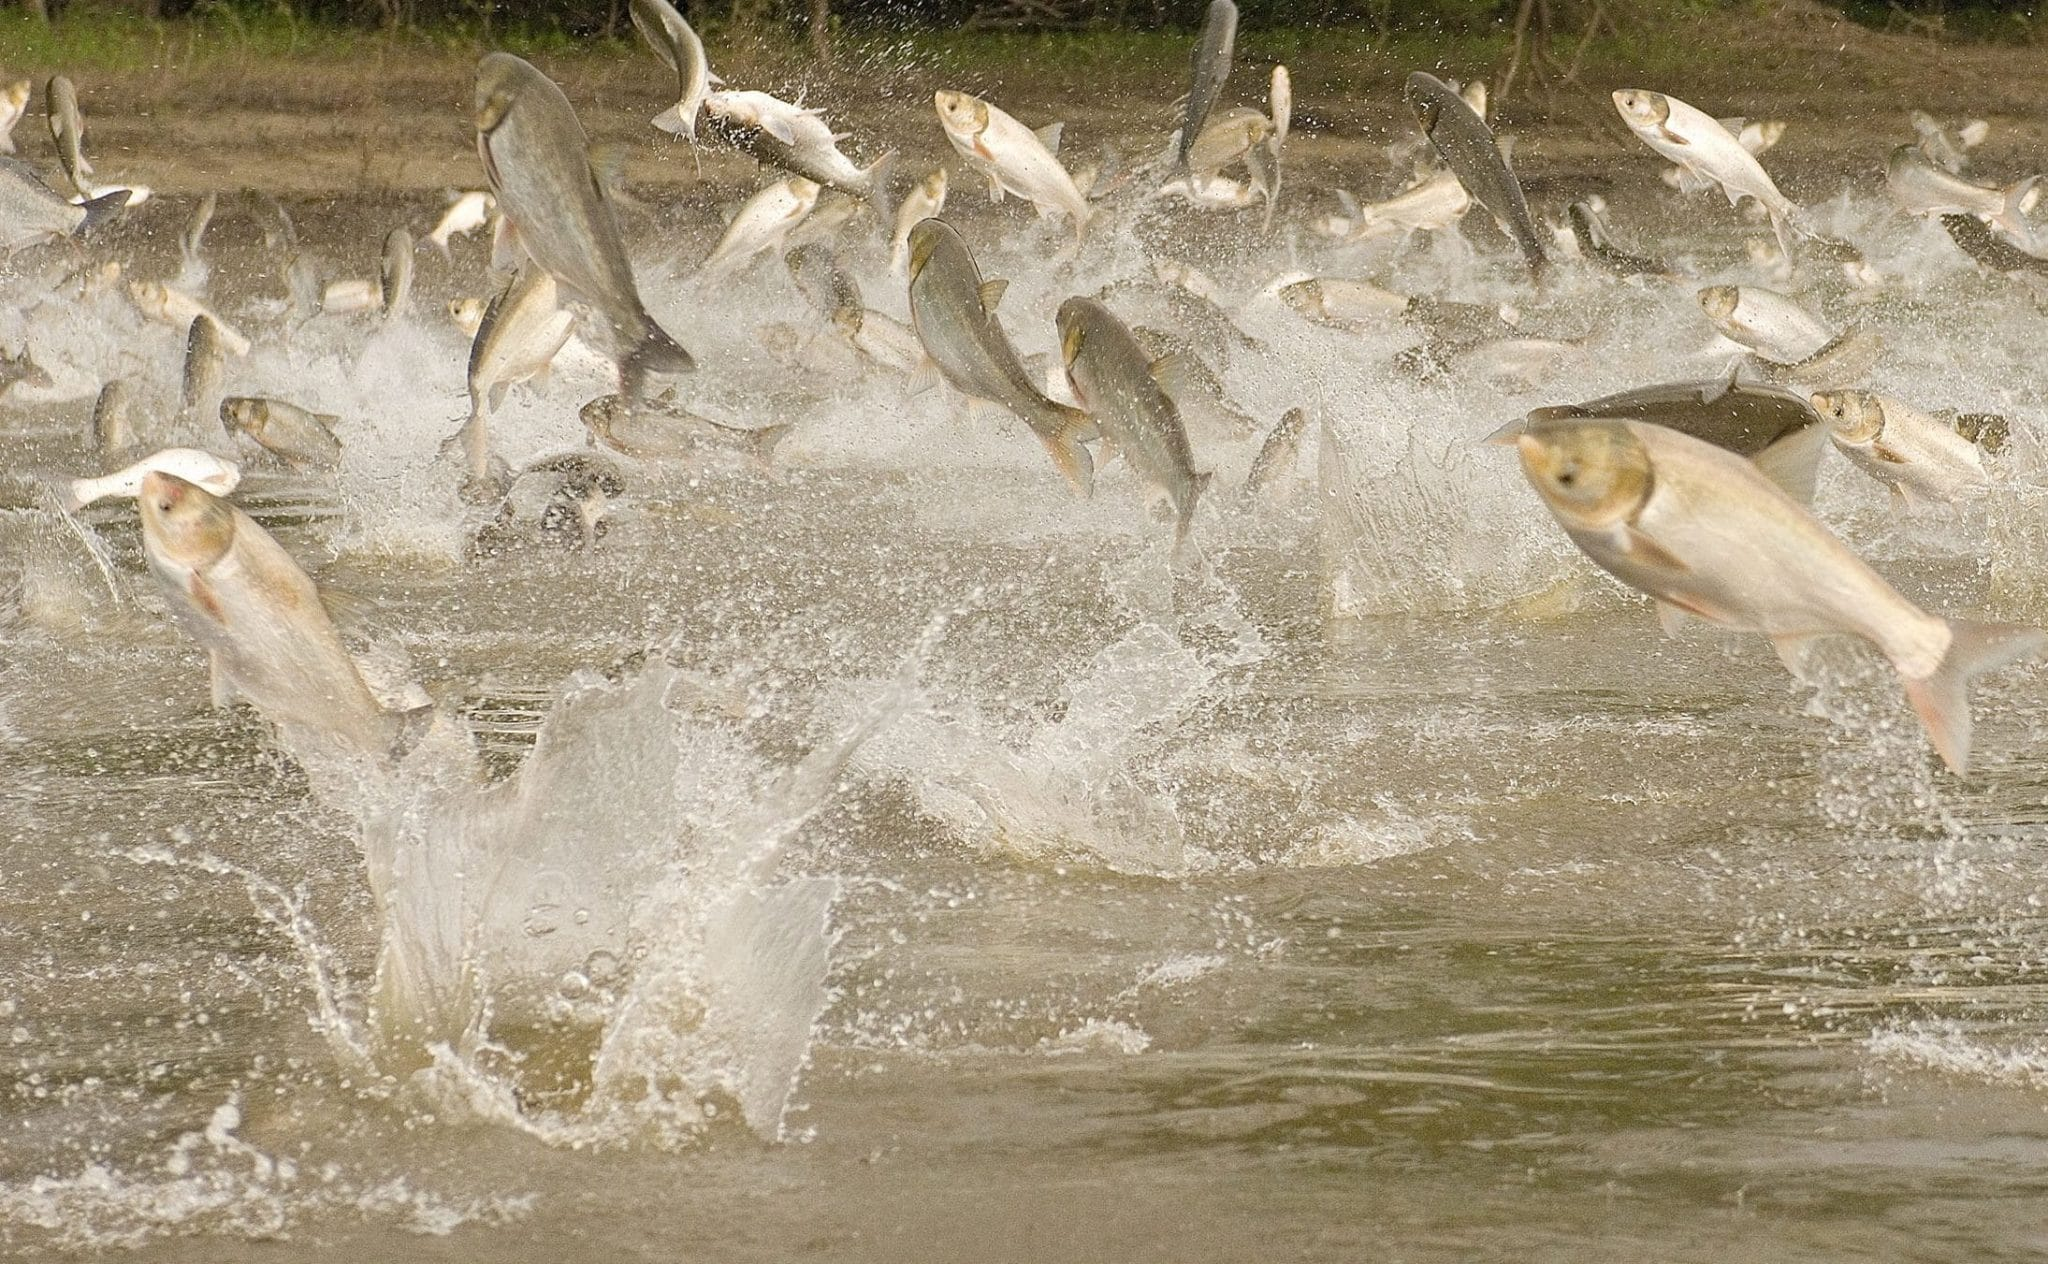 Invasive Species: Aquatic Species - Asian Carp